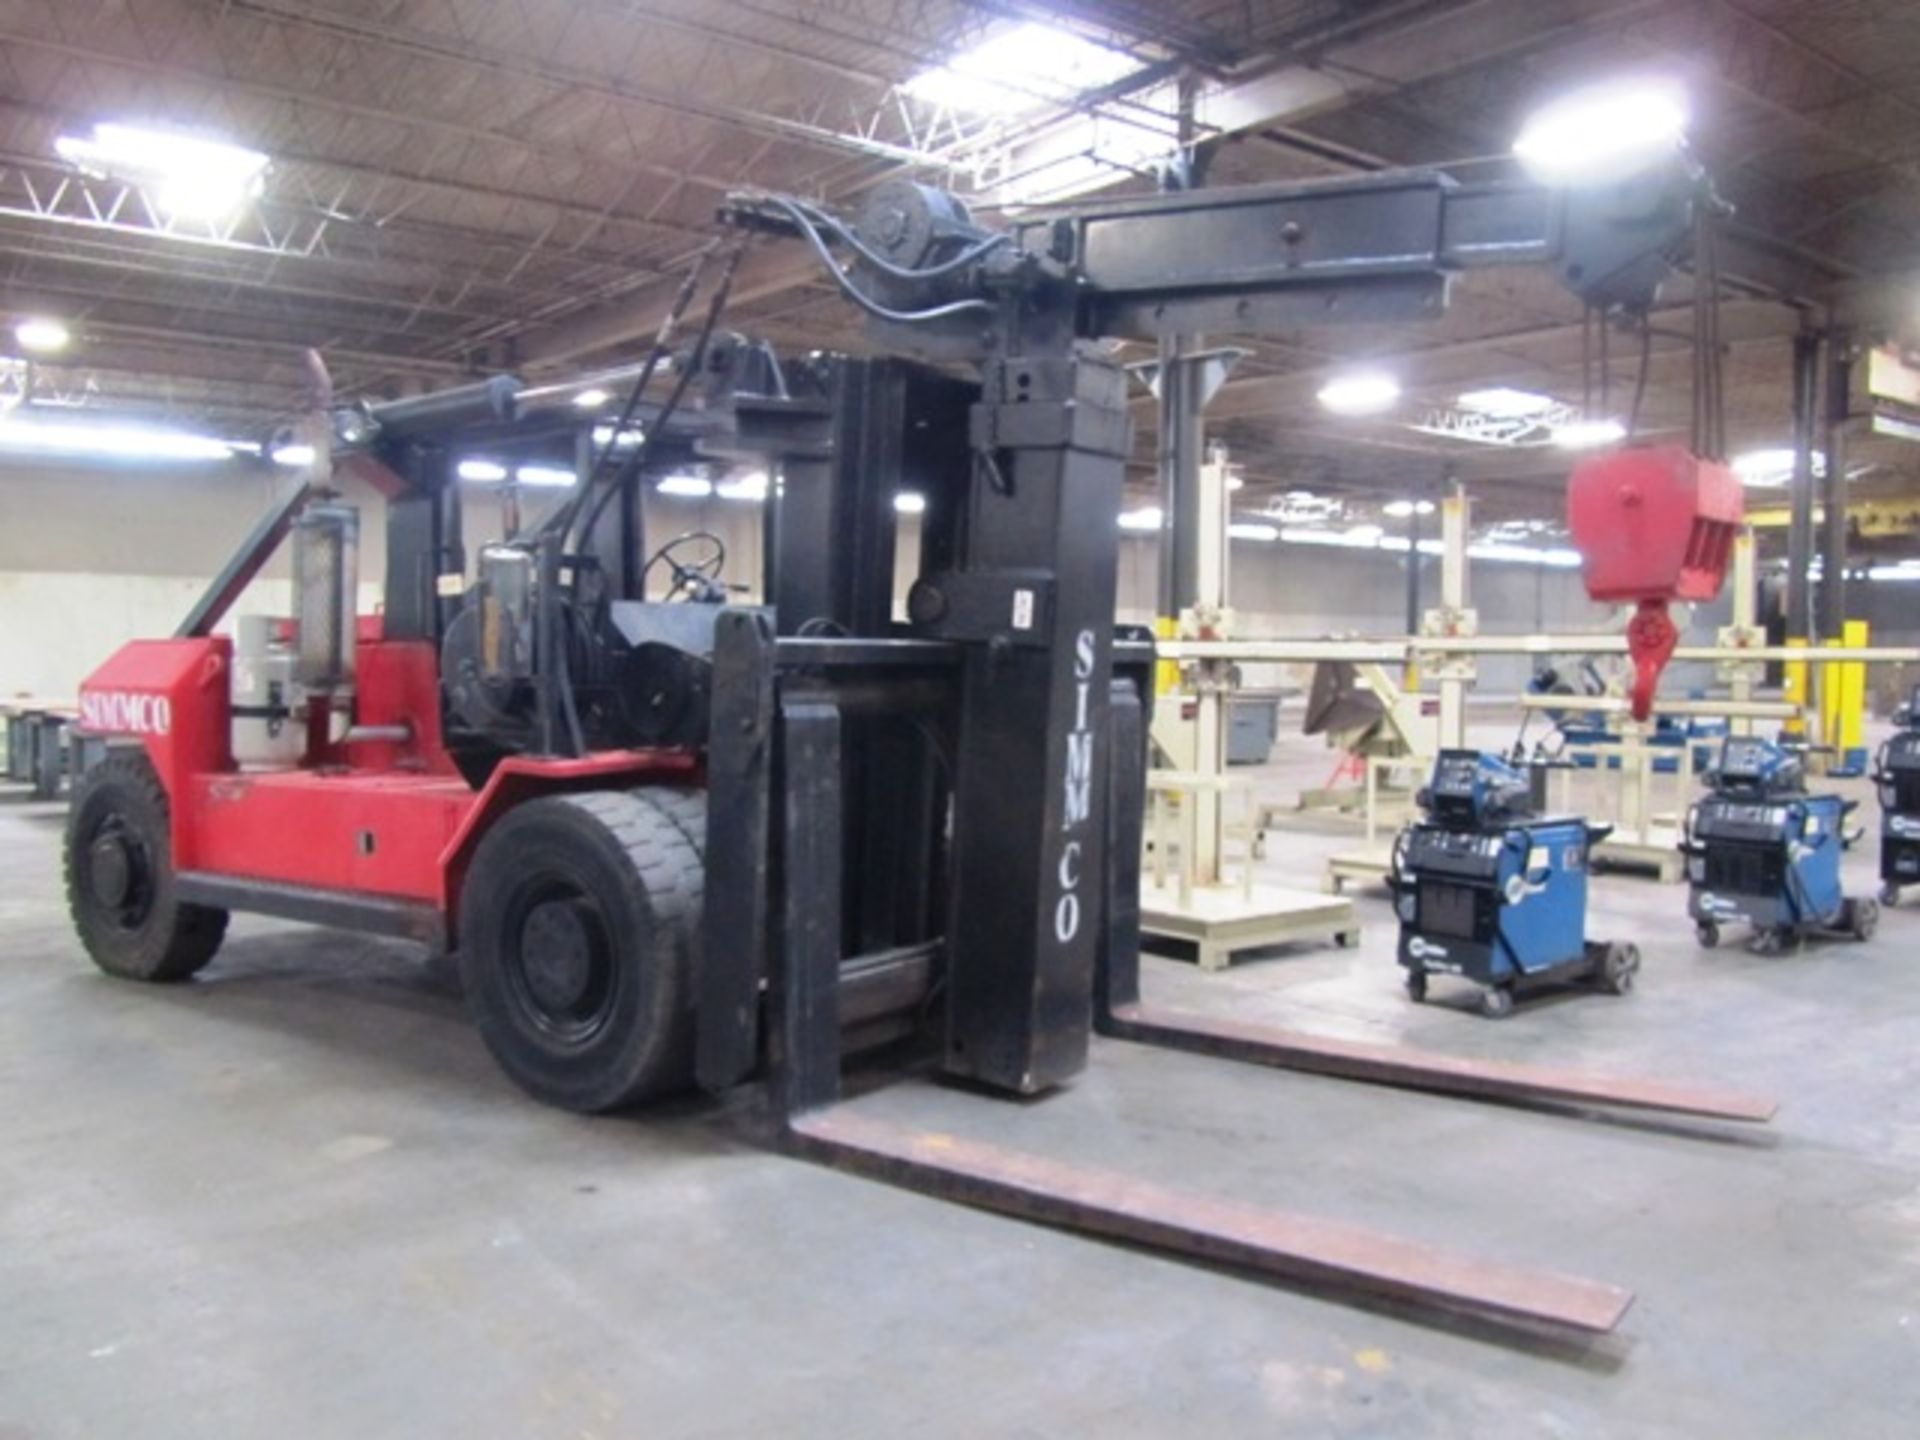 Lot 711C - Taylor Approx 40,000lb Propane / Gas Forklift with Approx 2485.2 Hours, 6' Forks, Rigging Boom